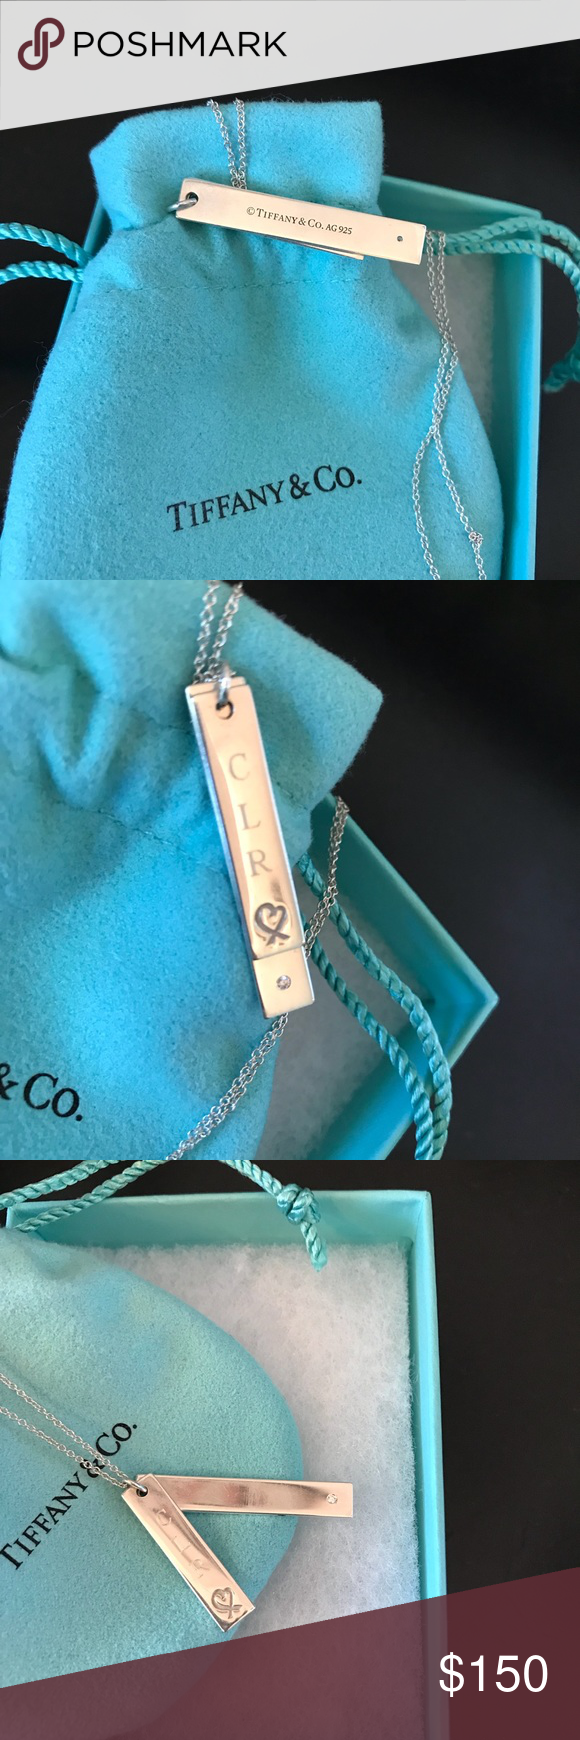 """0fc567459 Tiffany Necklace w/Engraved Bar Heart pendant Sterling silver and diamond  Tiffany and Co Paloma Picasso Loving Heart Double Bar Pendant with 16""""  chain."""